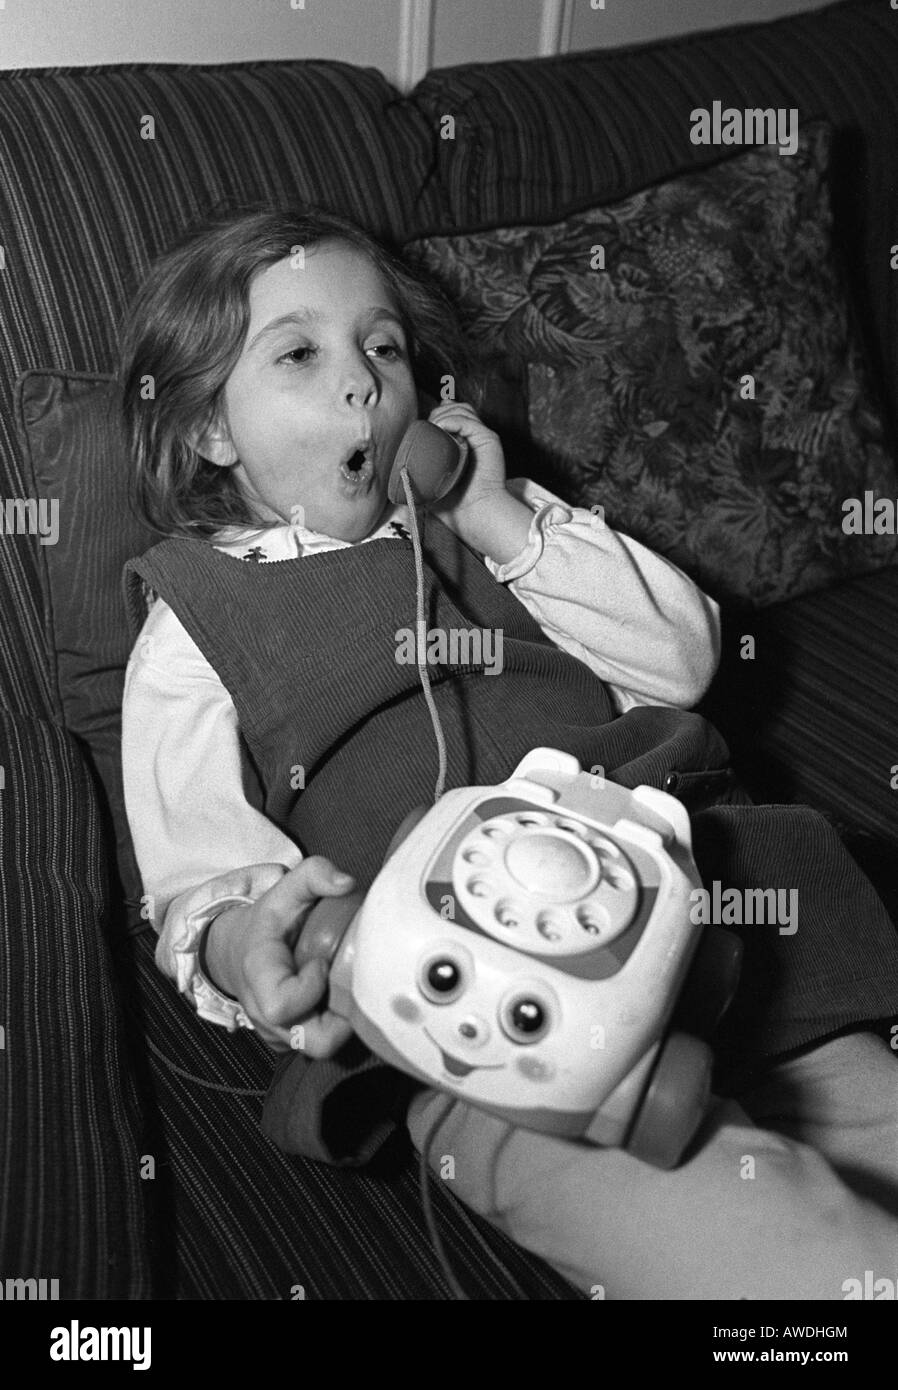 Young girl having quite a conversation on her toy phone - Stock Image